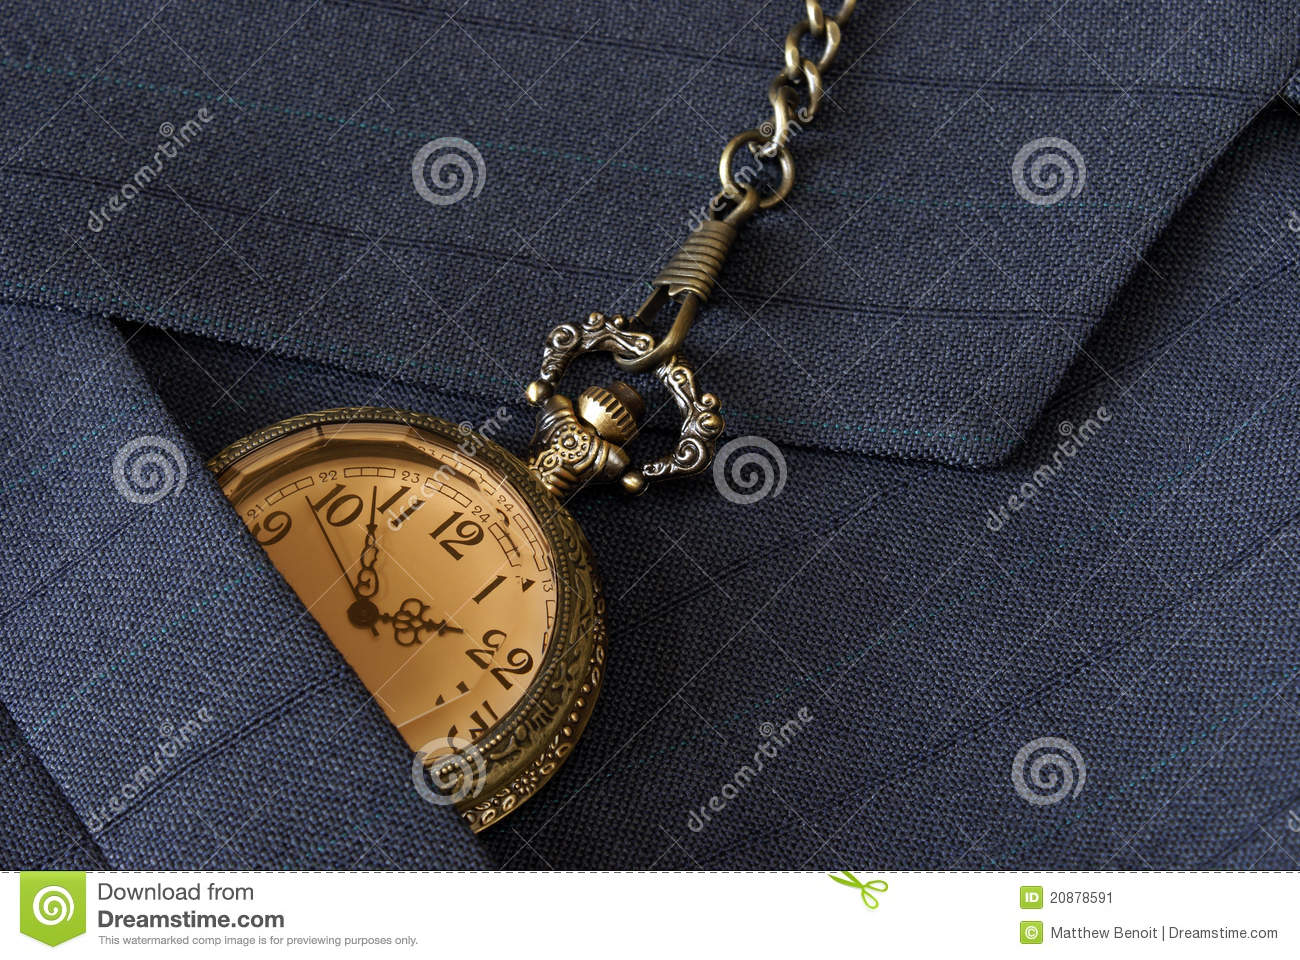 how to change the time on a pocket watch